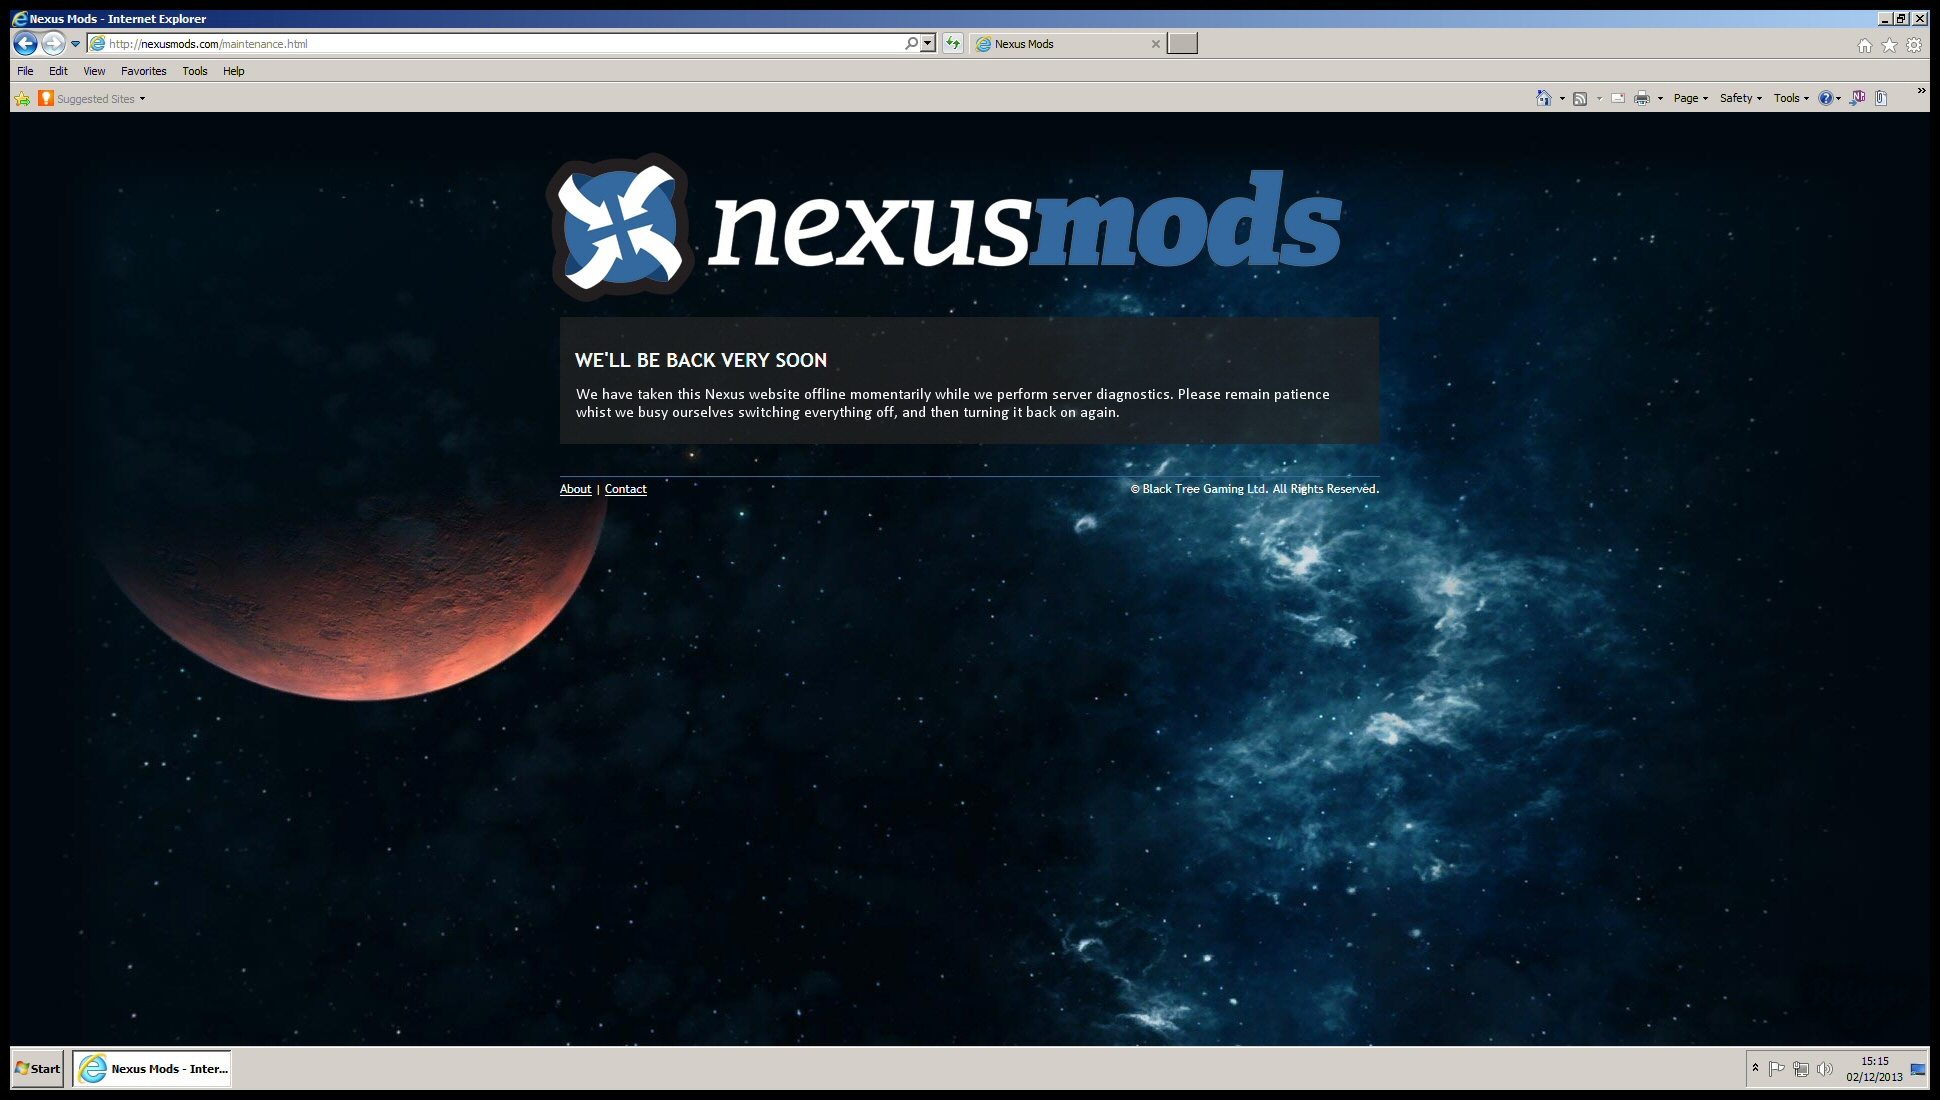 Nexus Back Soon